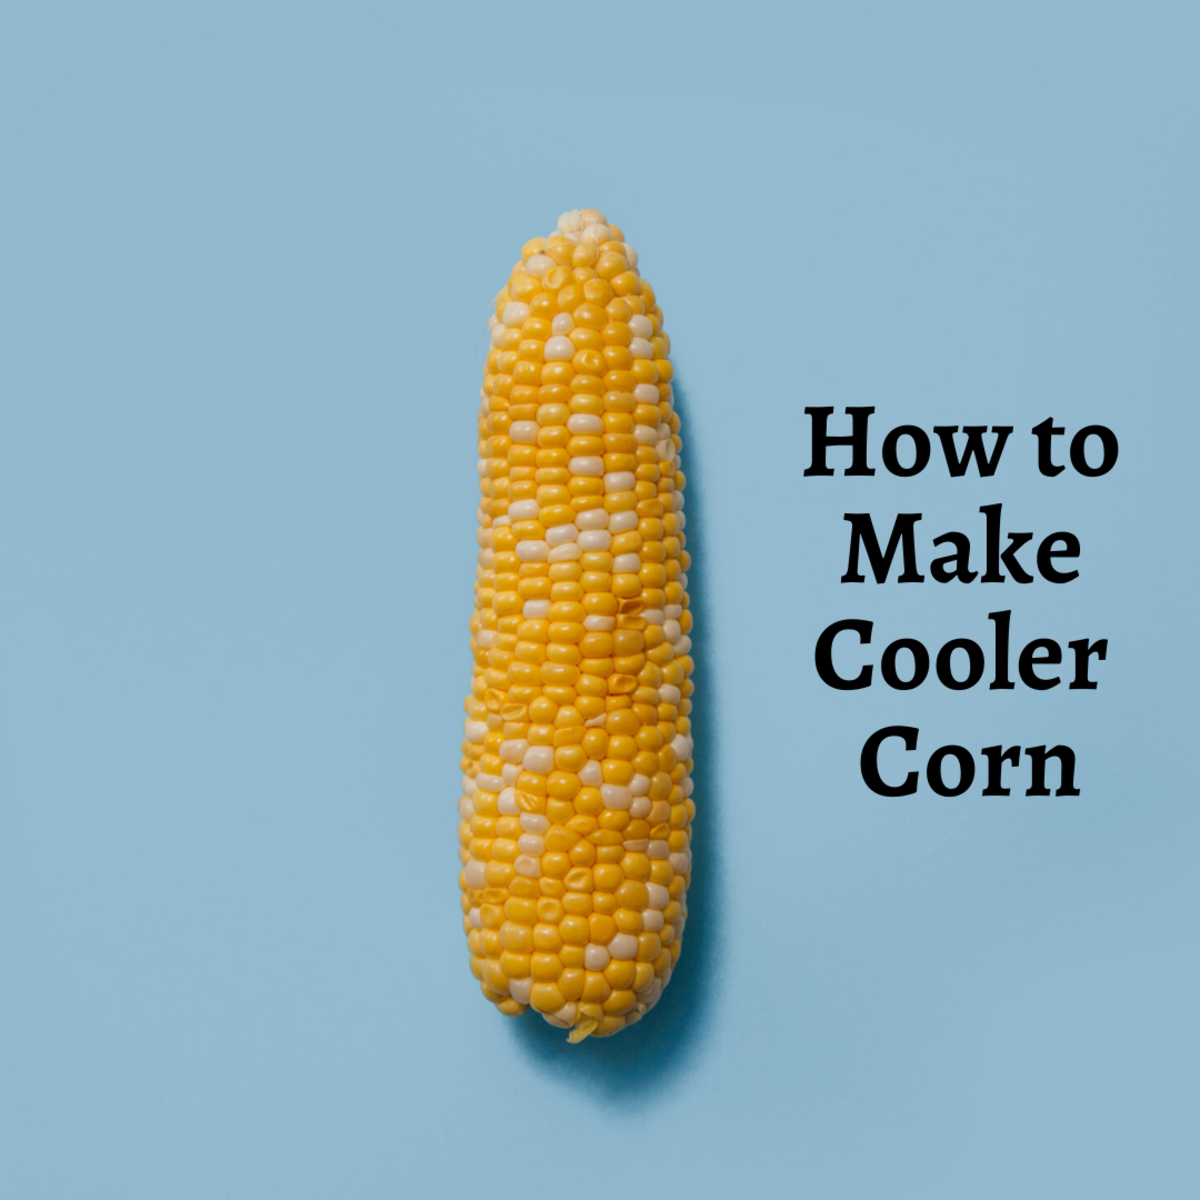 Cooler corn is a delicious treat your guests will love!